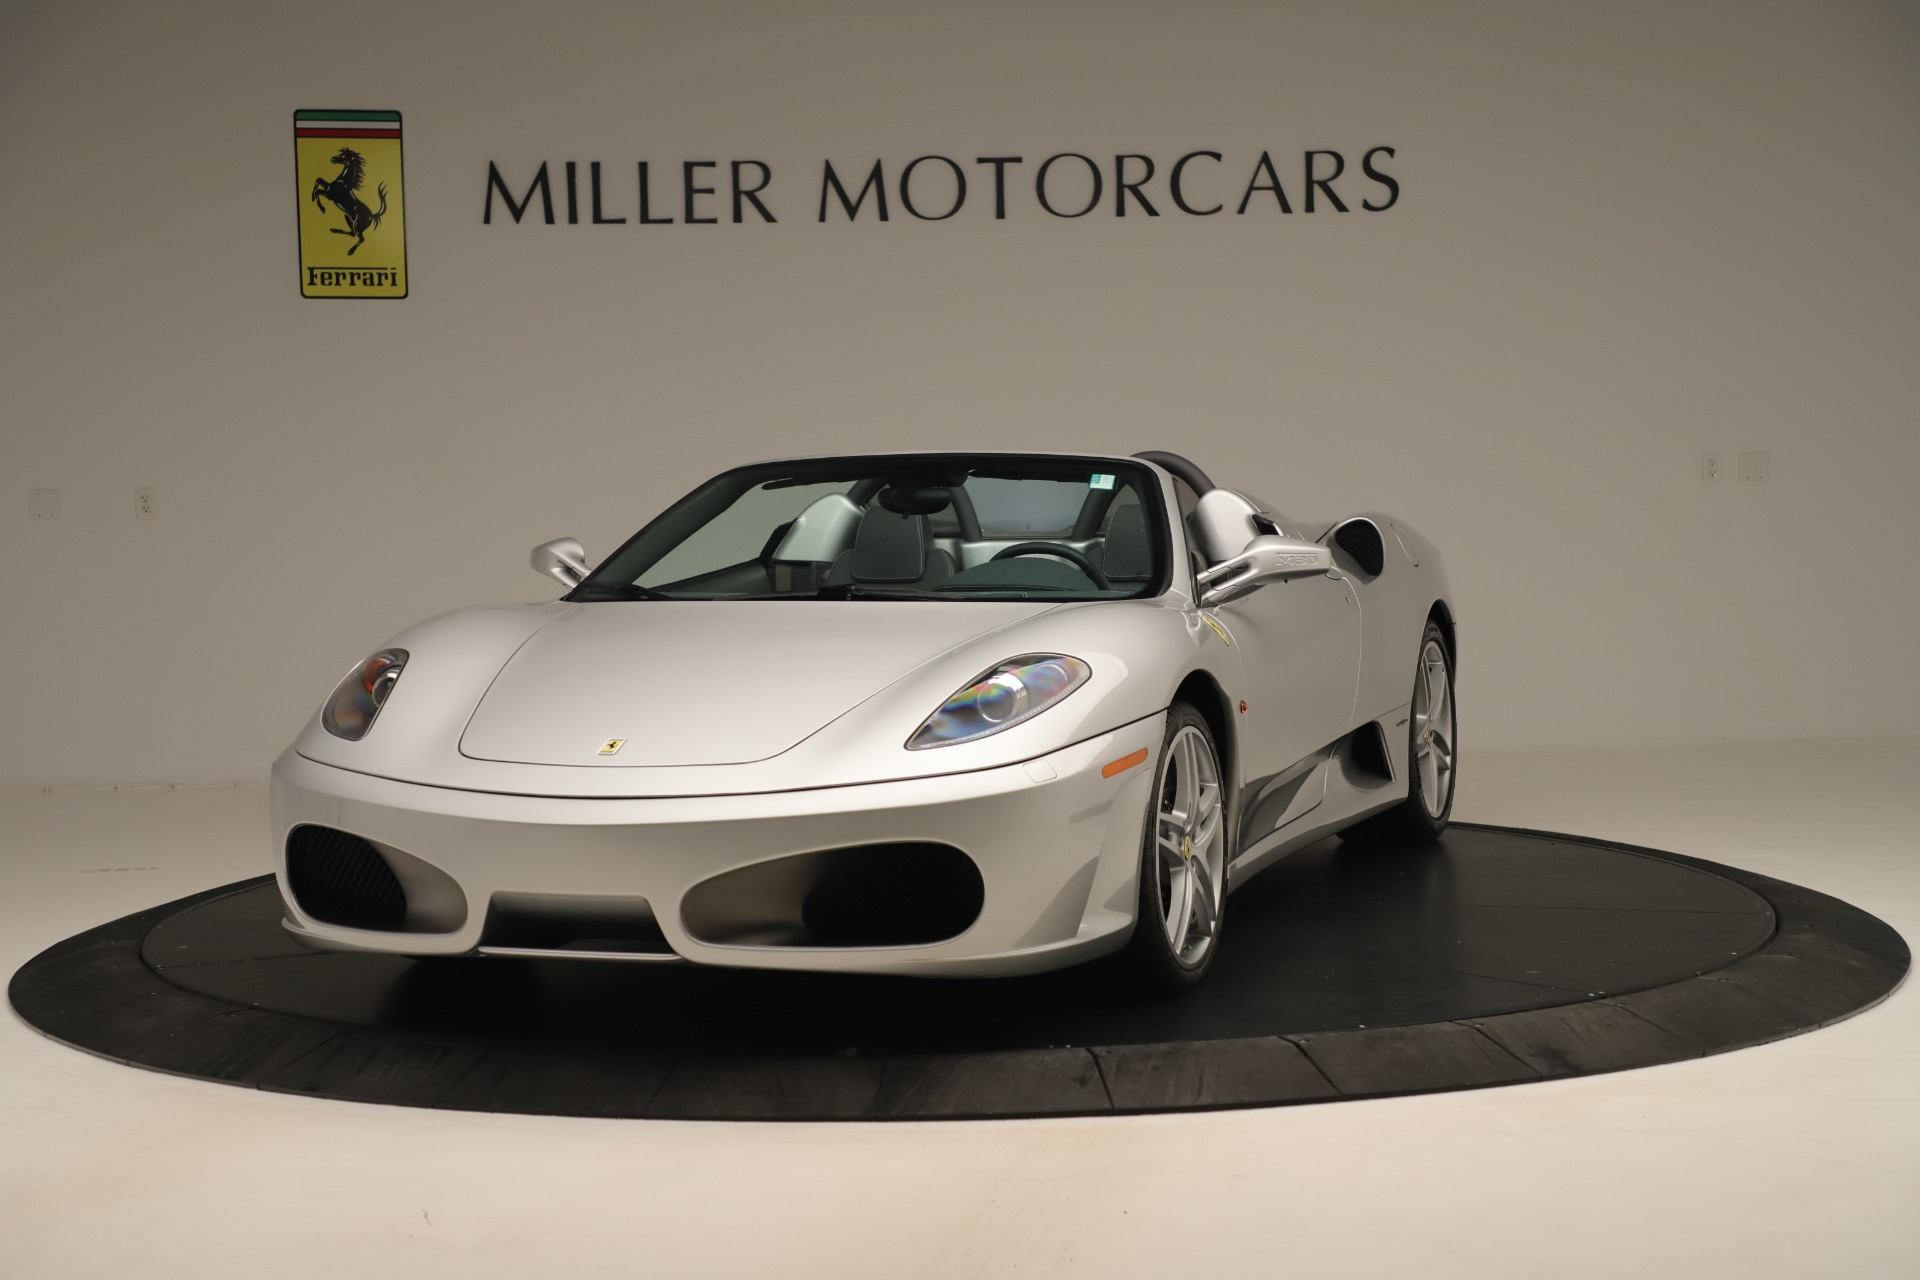 Used 2008 Ferrari F430 Spider for sale $125,900 at Bentley Greenwich in Greenwich CT 06830 1